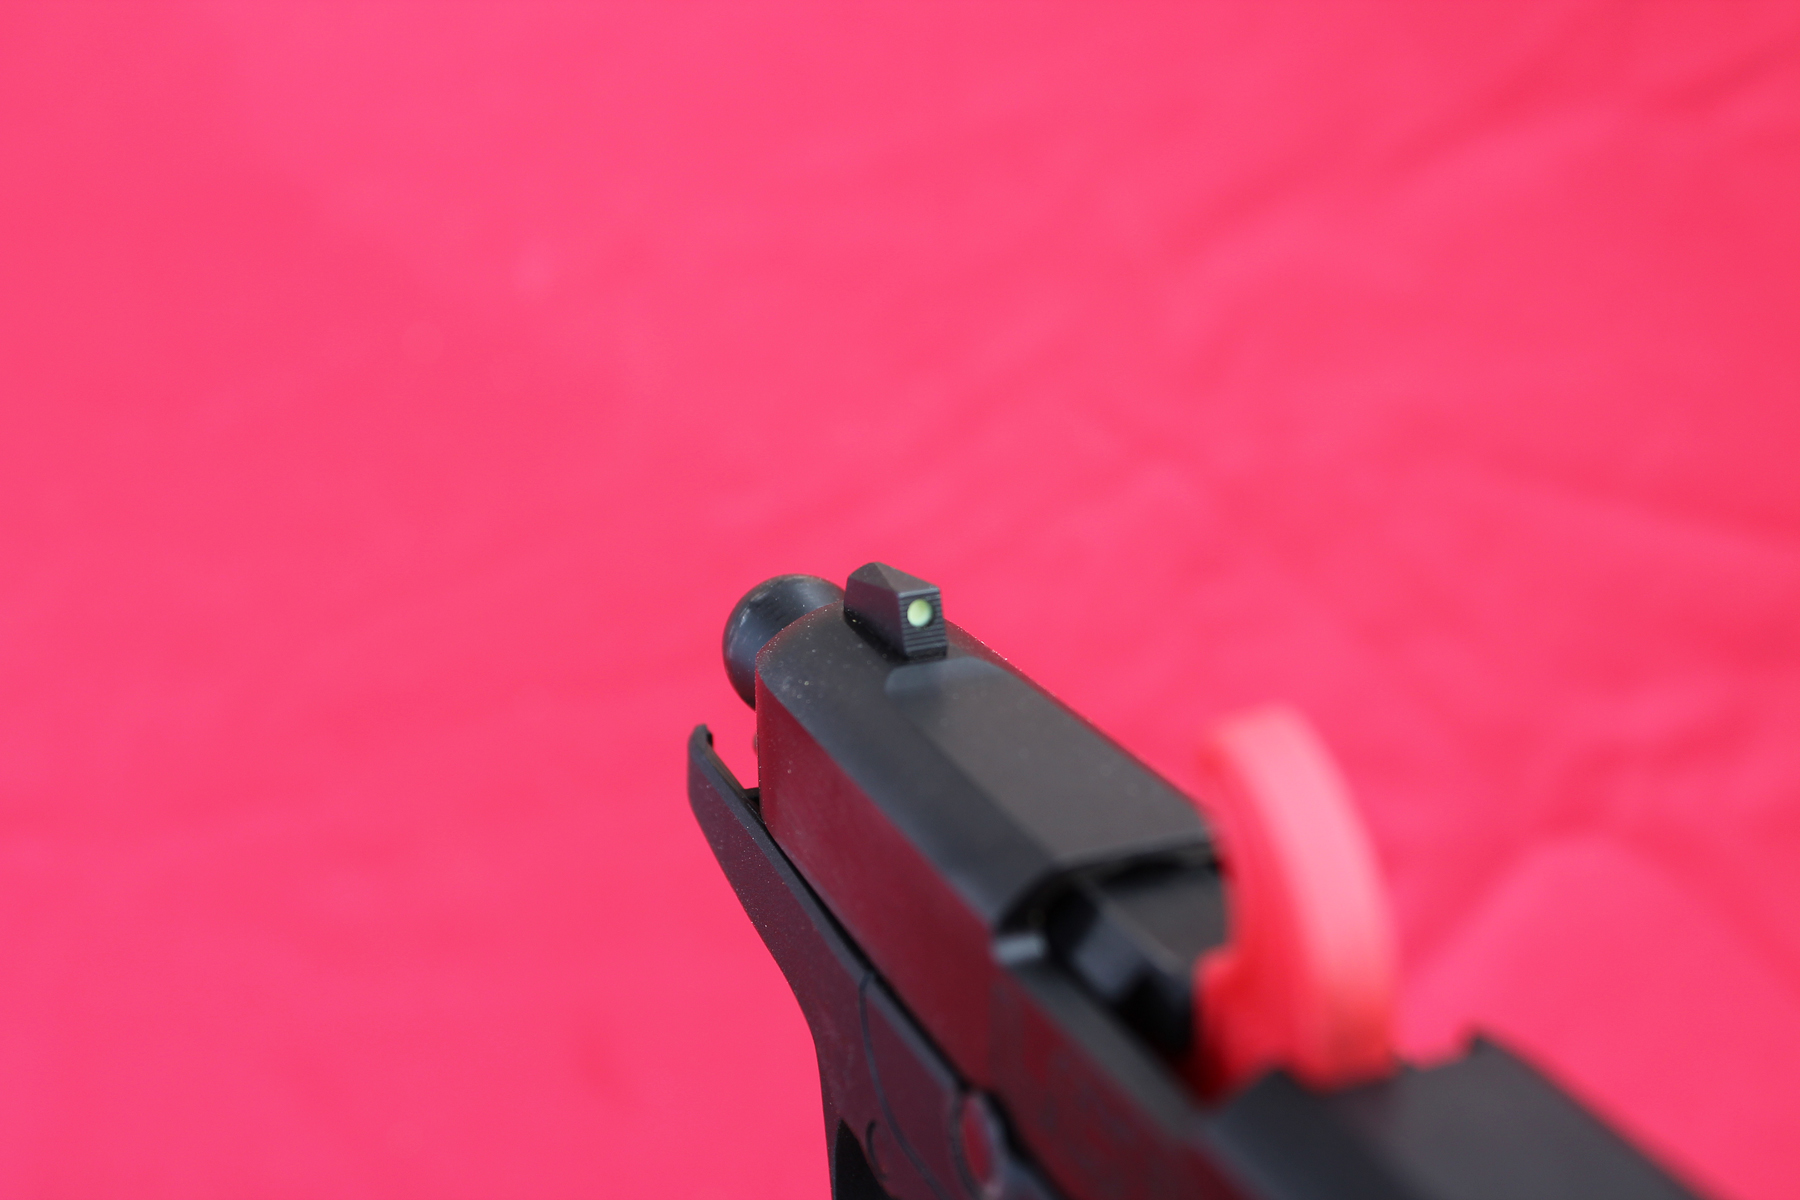 Ruger LCP front sight